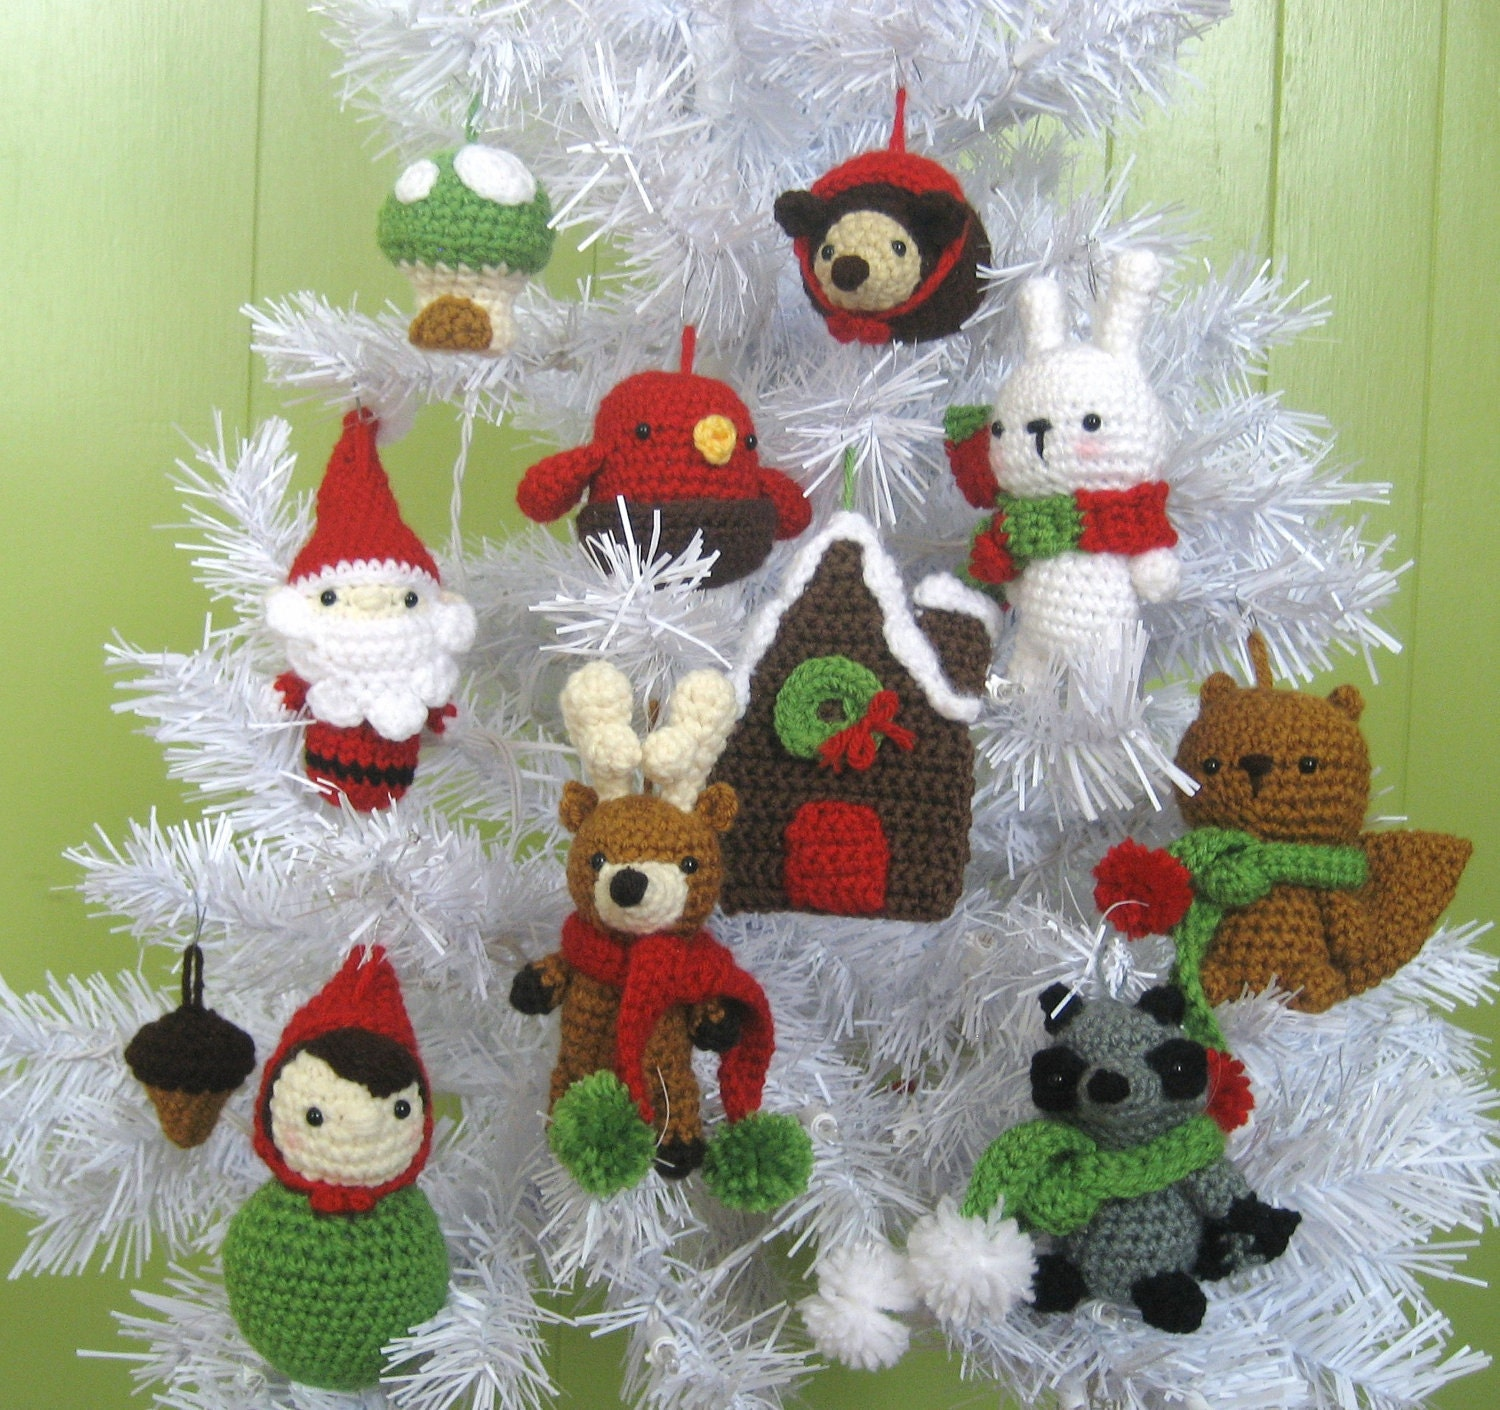 Crochet Christmas Ornaments Pattern Free Patterns For